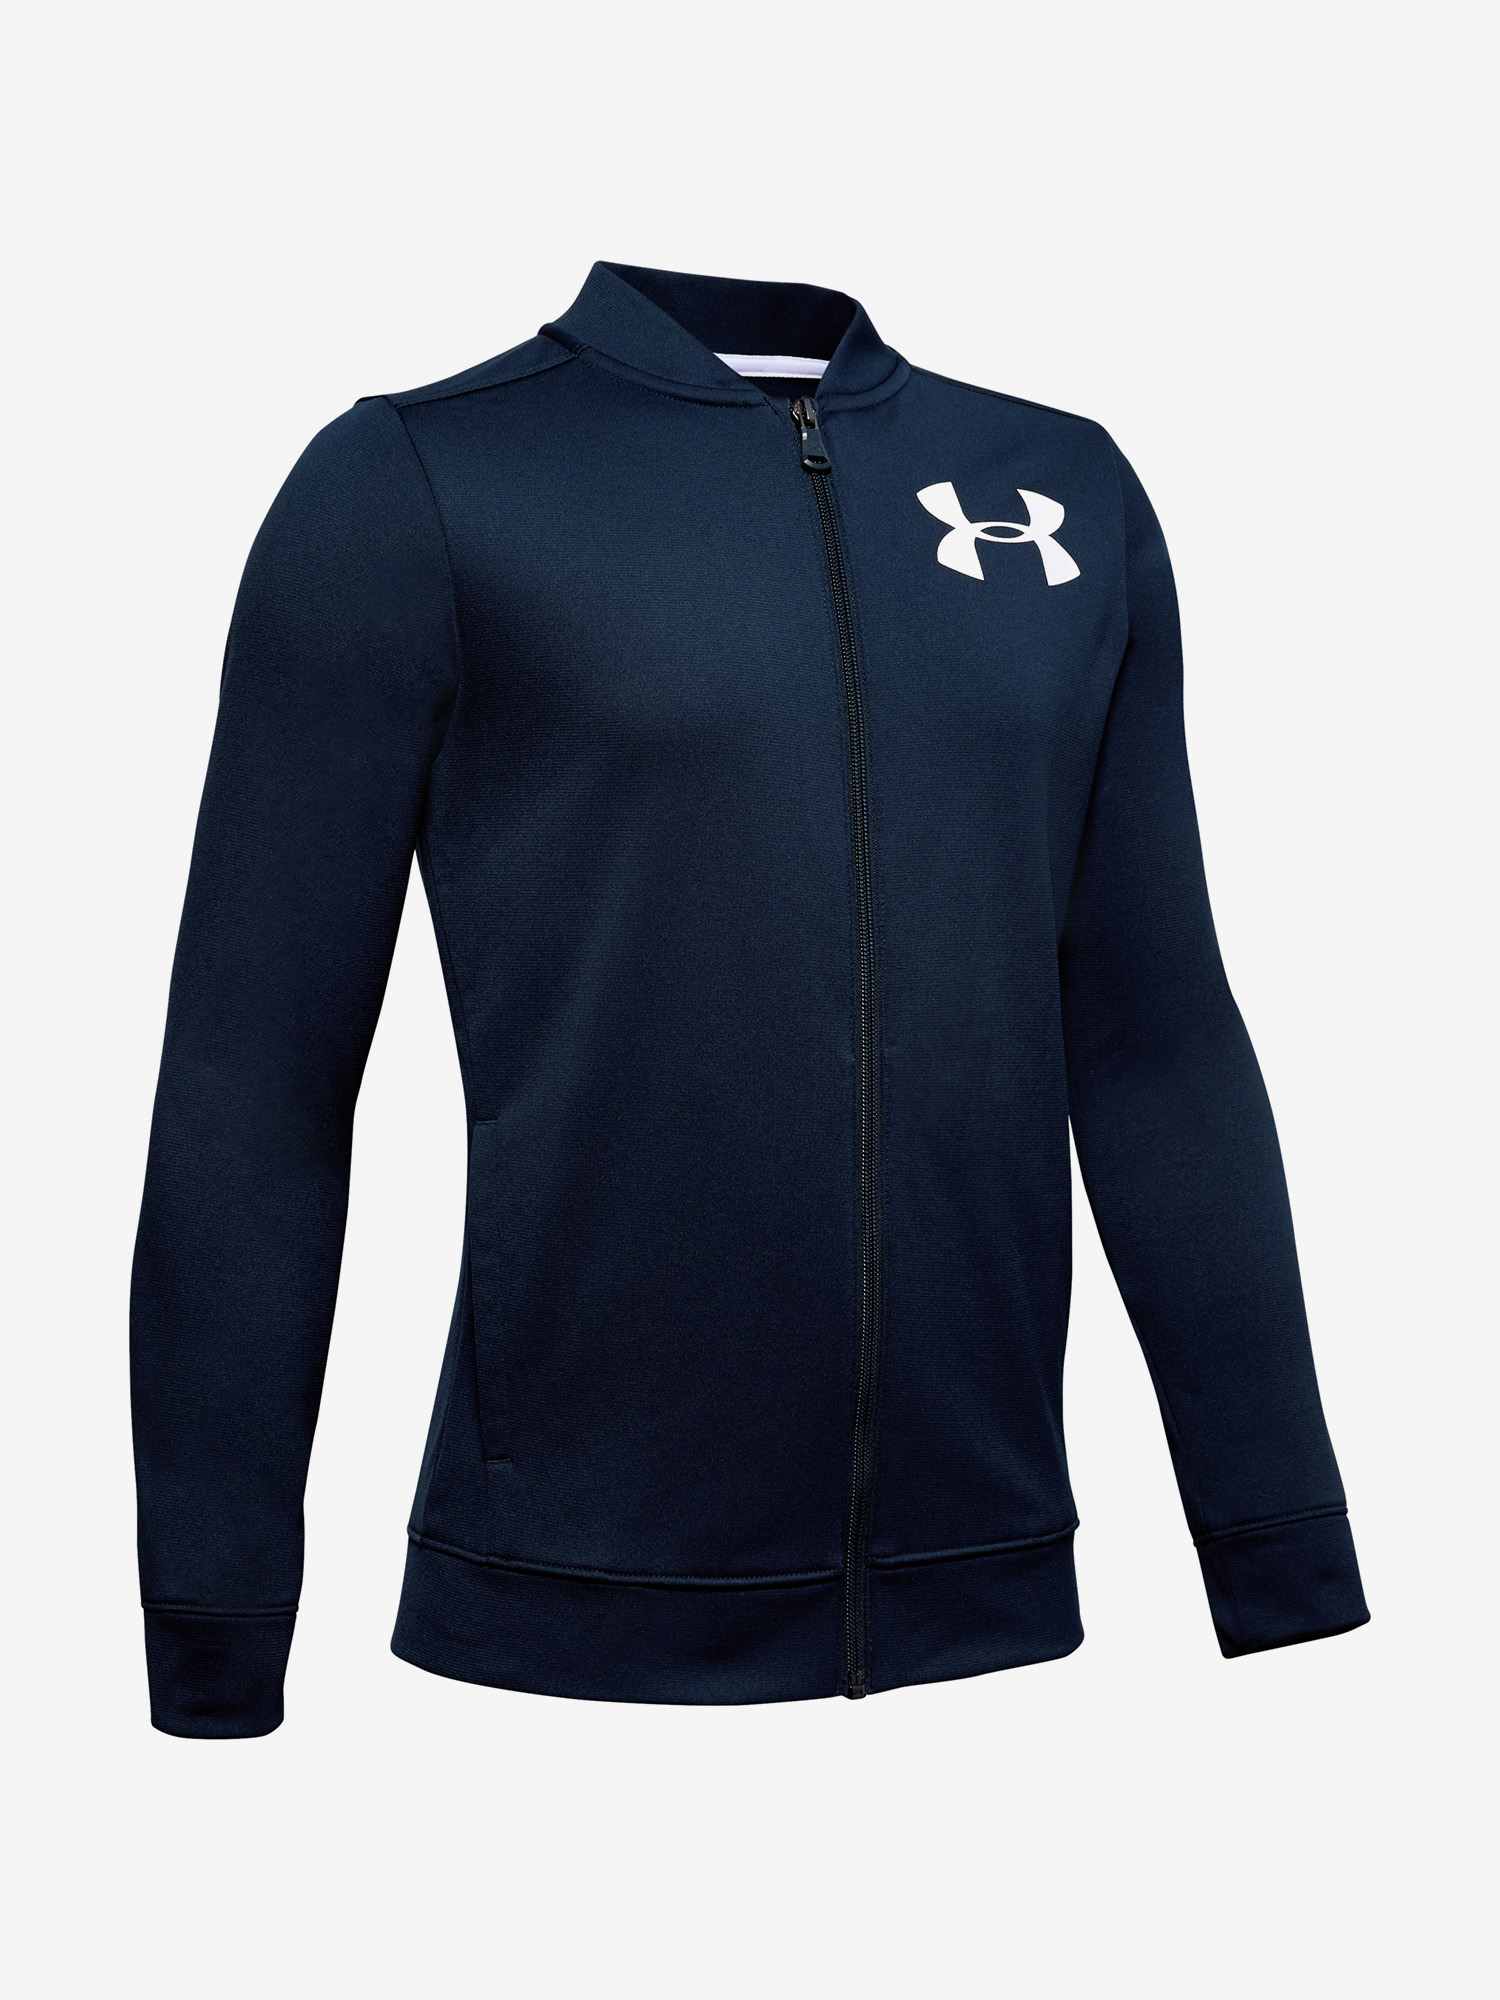 Mikina Under Armour Pennant Jacket 2.0 (1)